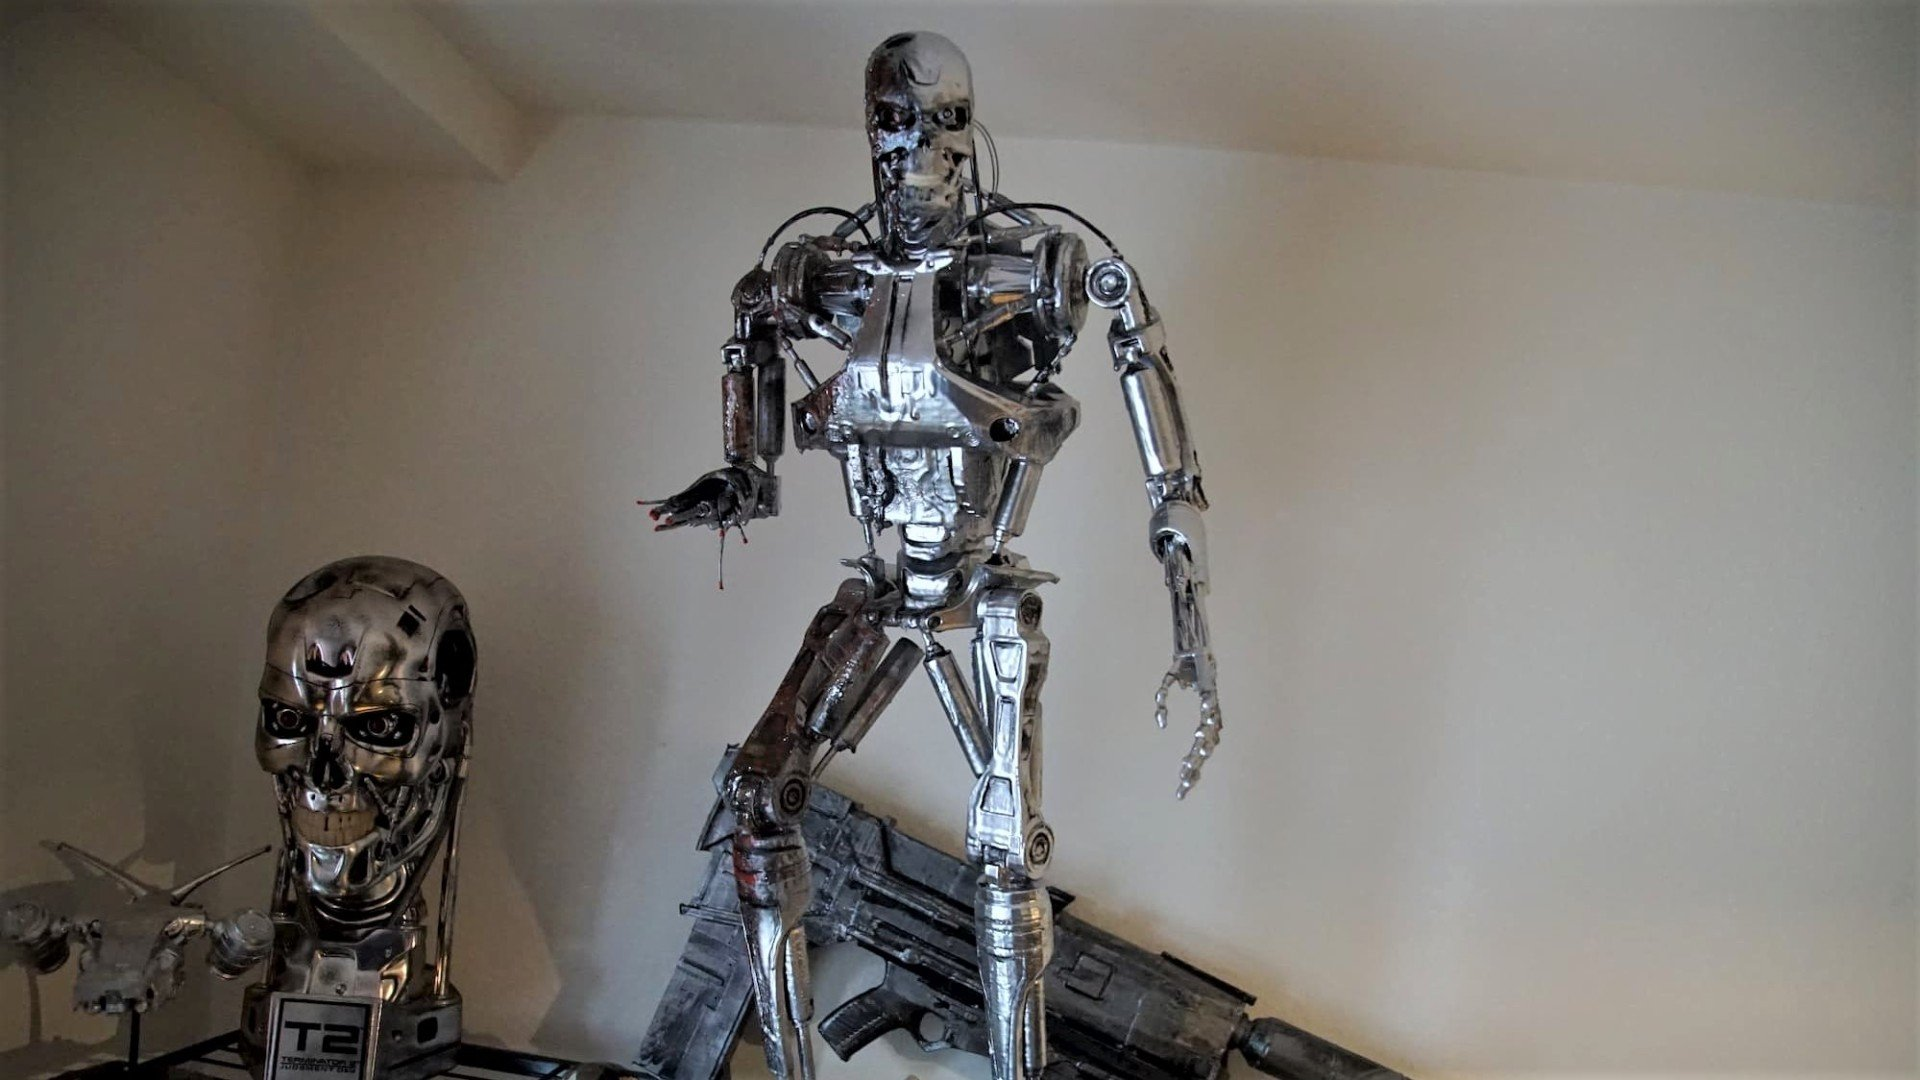 3D Printed Terminator: 6 Great Models to Thwart Skynet | All3DP